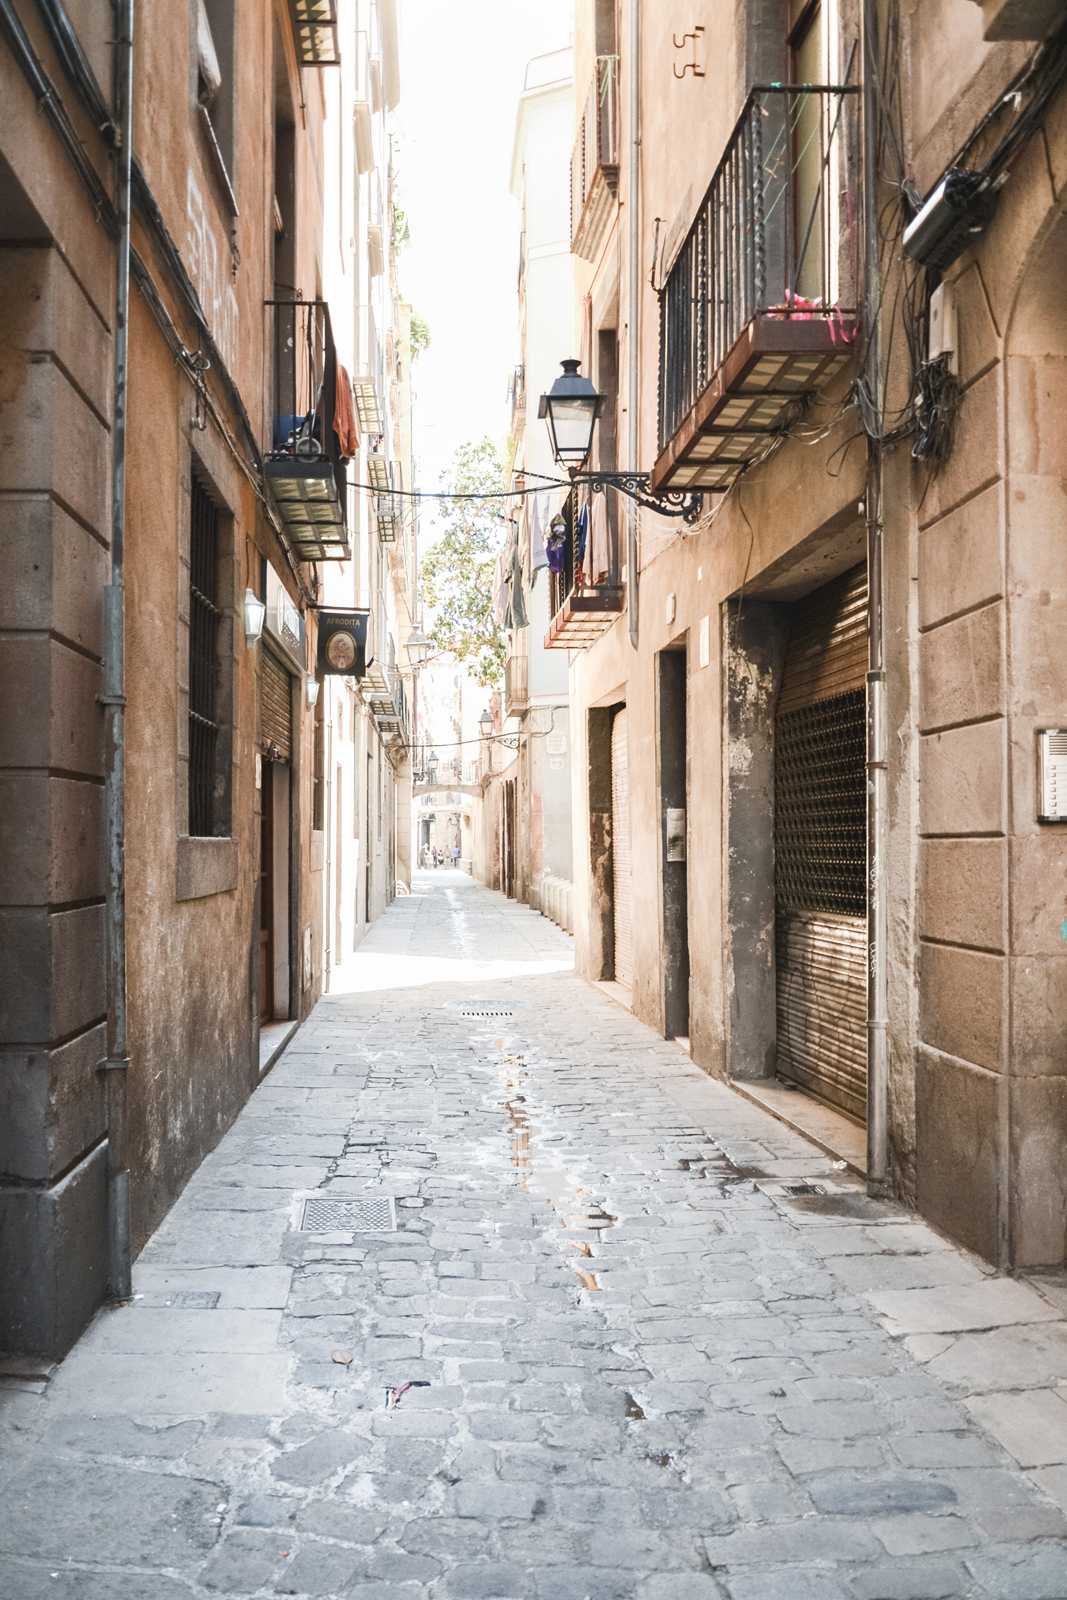 Barcelona-Barri-Gotic-Street2-by-epepa